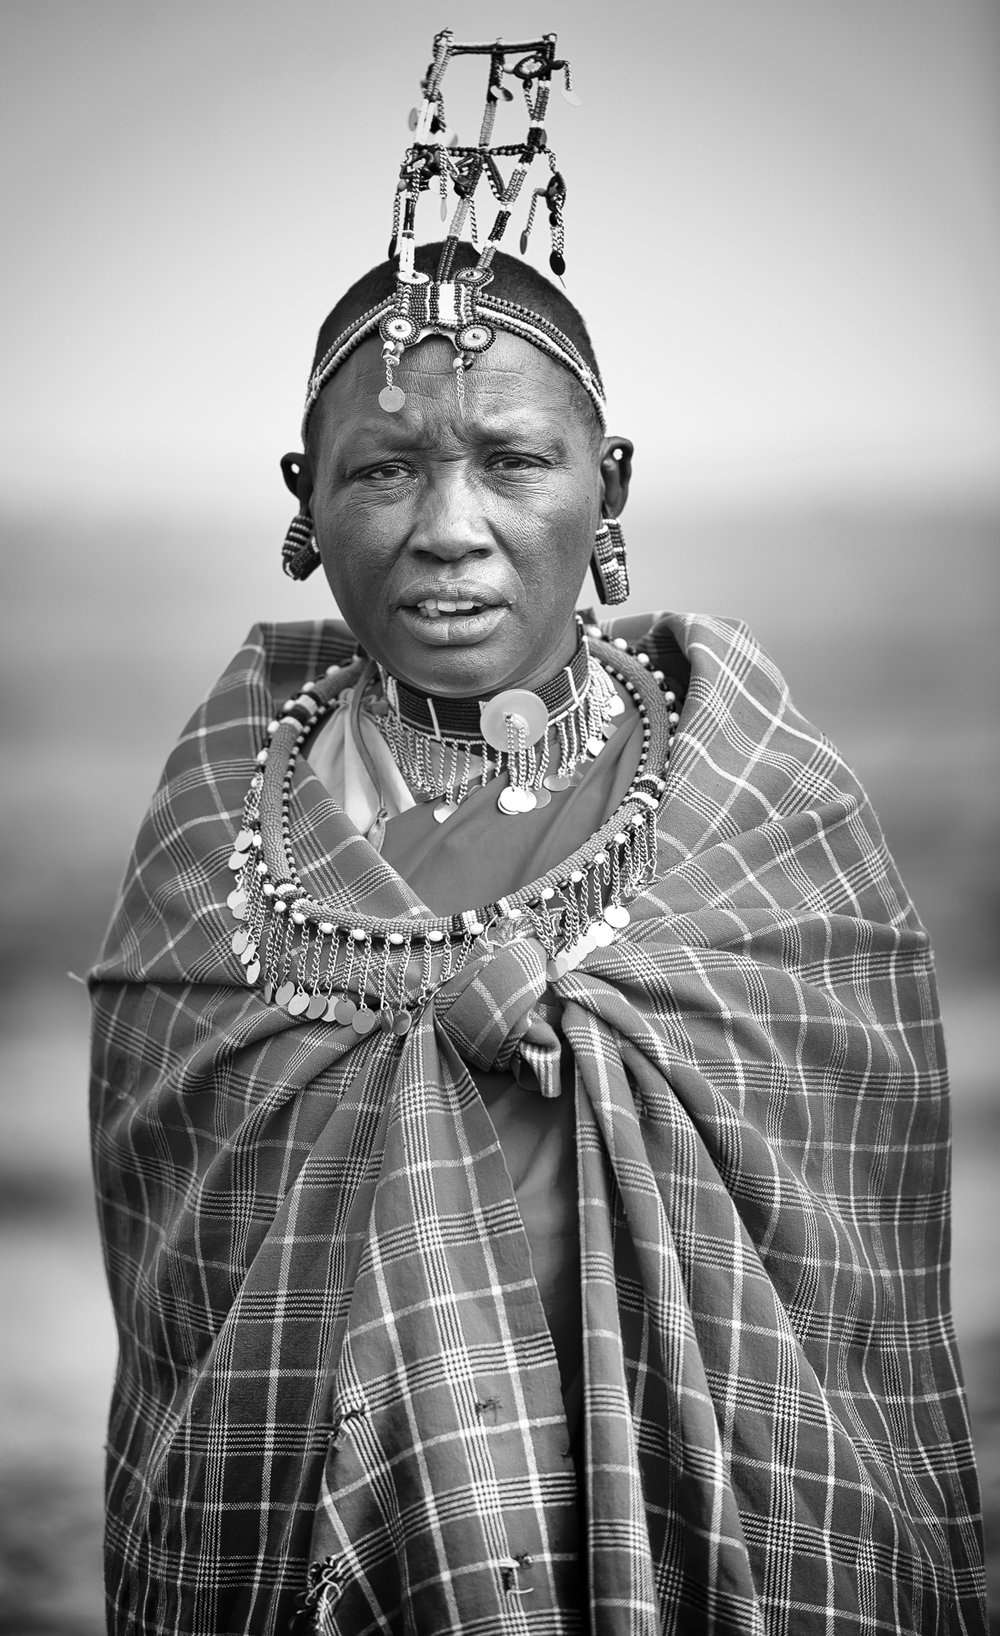 CARLA_DeDOMINICIS_Women of the Tribe-Maasai1-3.jpg